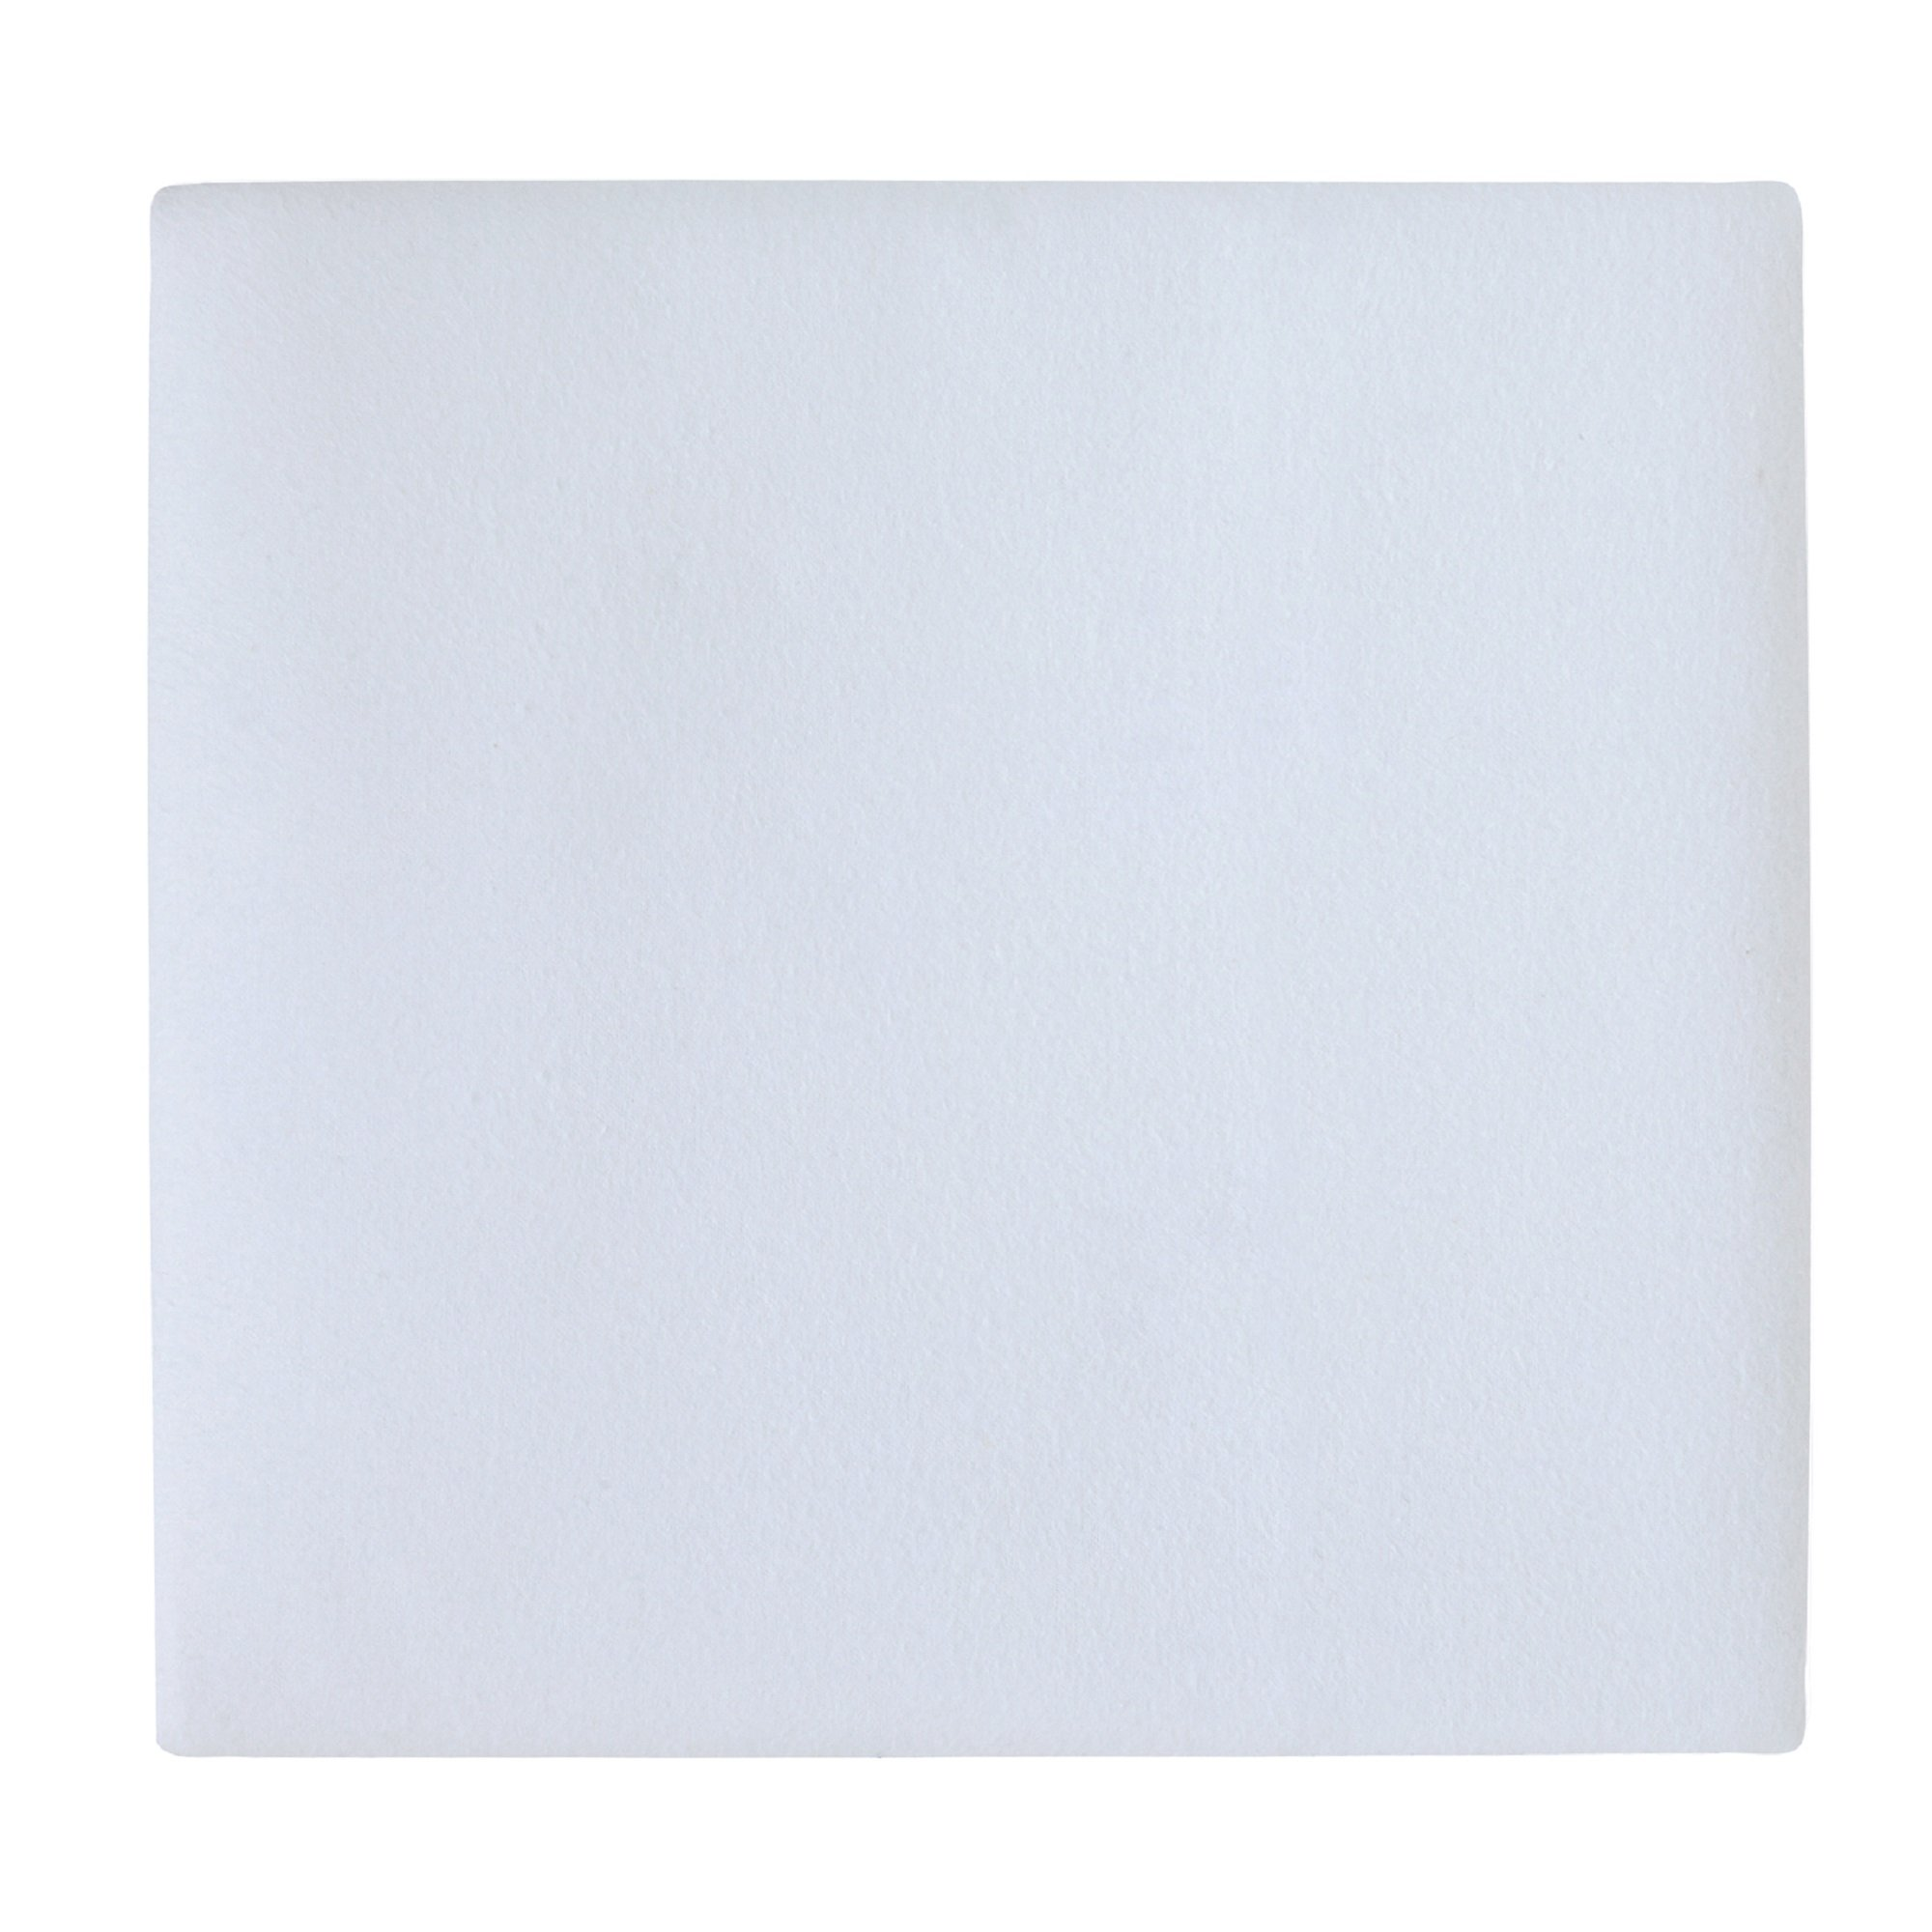 Carter's Flannel Protector Pad, Solid White, One Size by Carter's